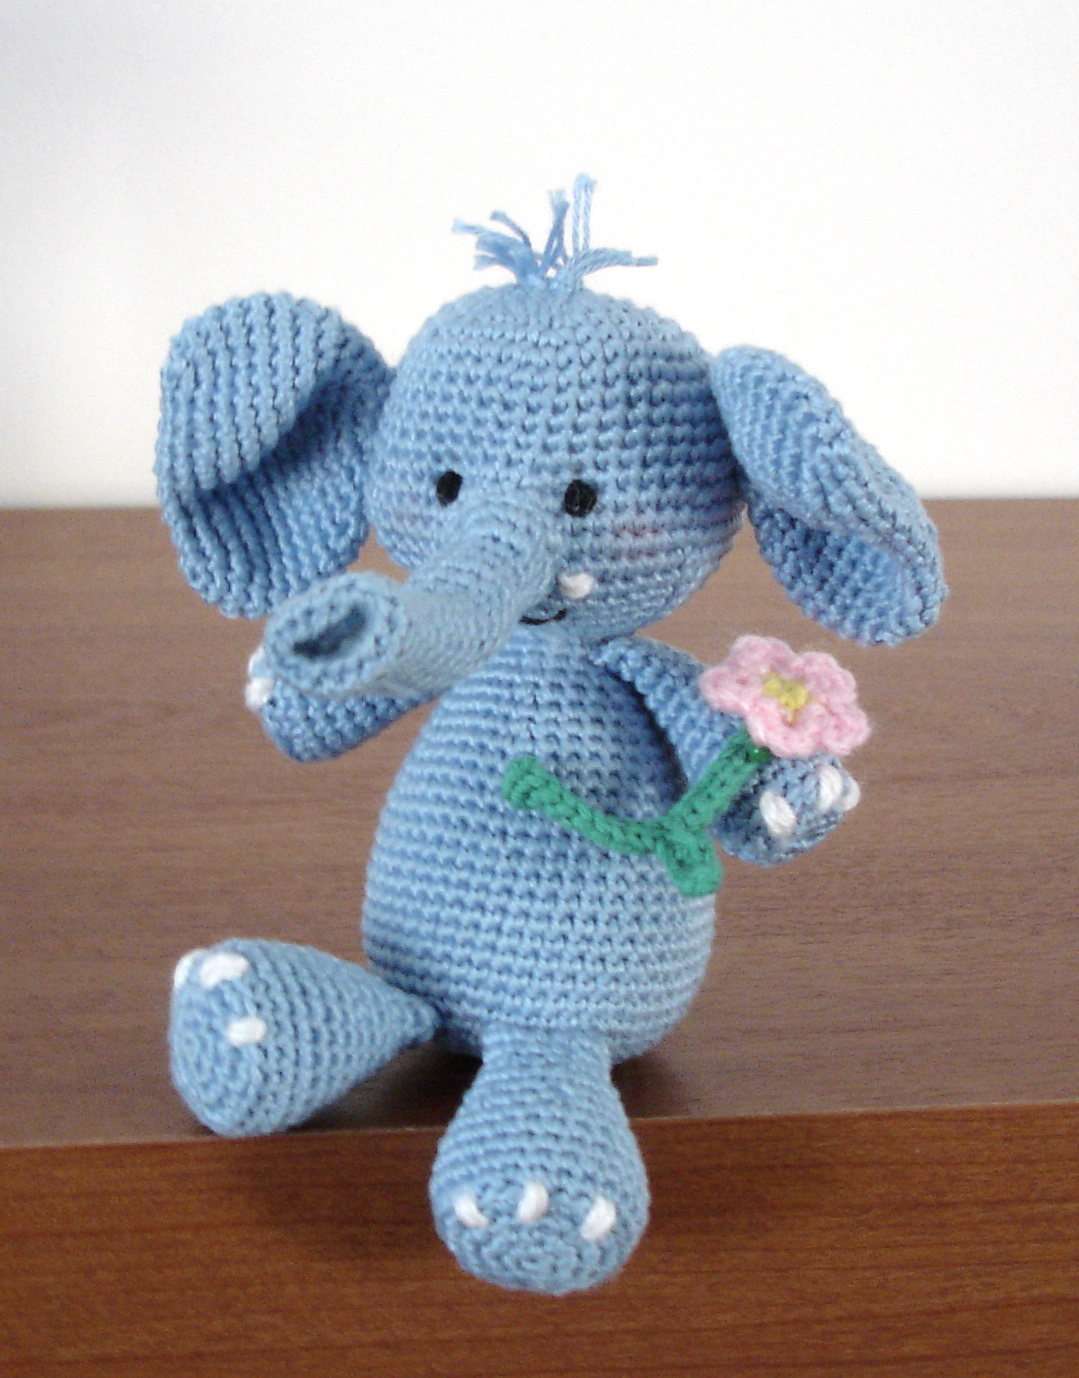 Elephant Amigurumi - Free Crochet Pattern • Craft Passion | 1378x1079